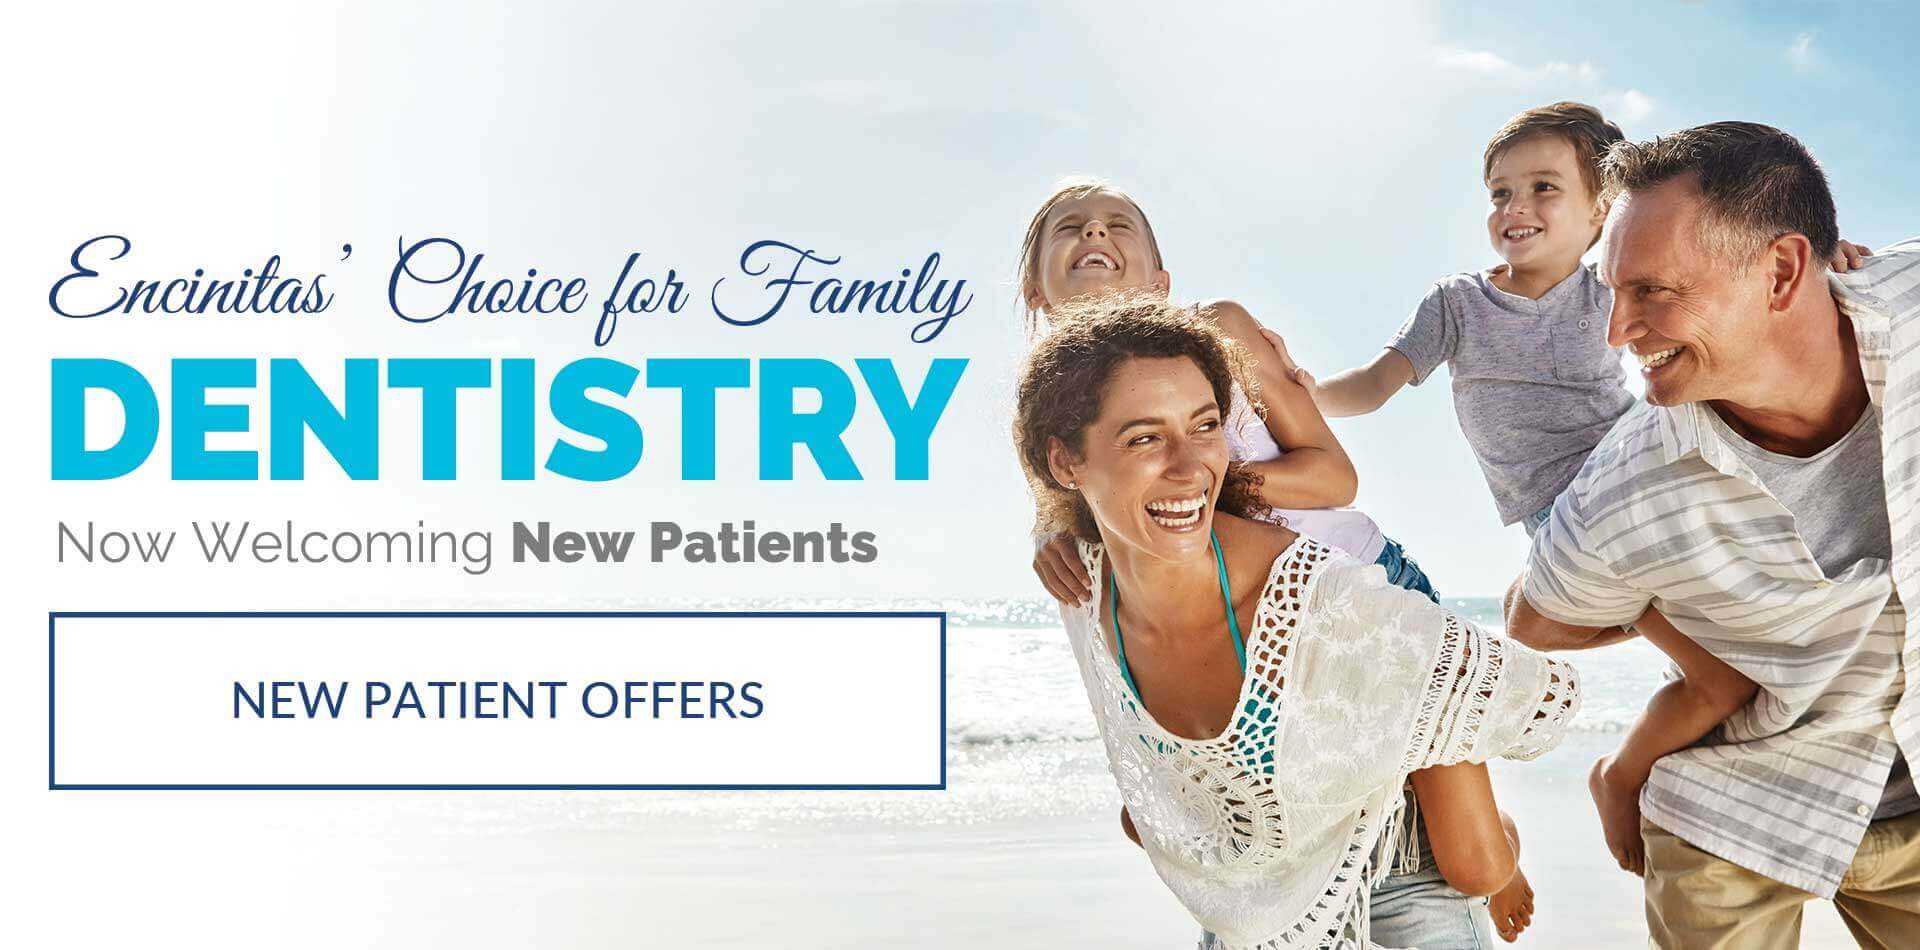 Encinitas' choice for family dentistry - Now welcoming new patients.